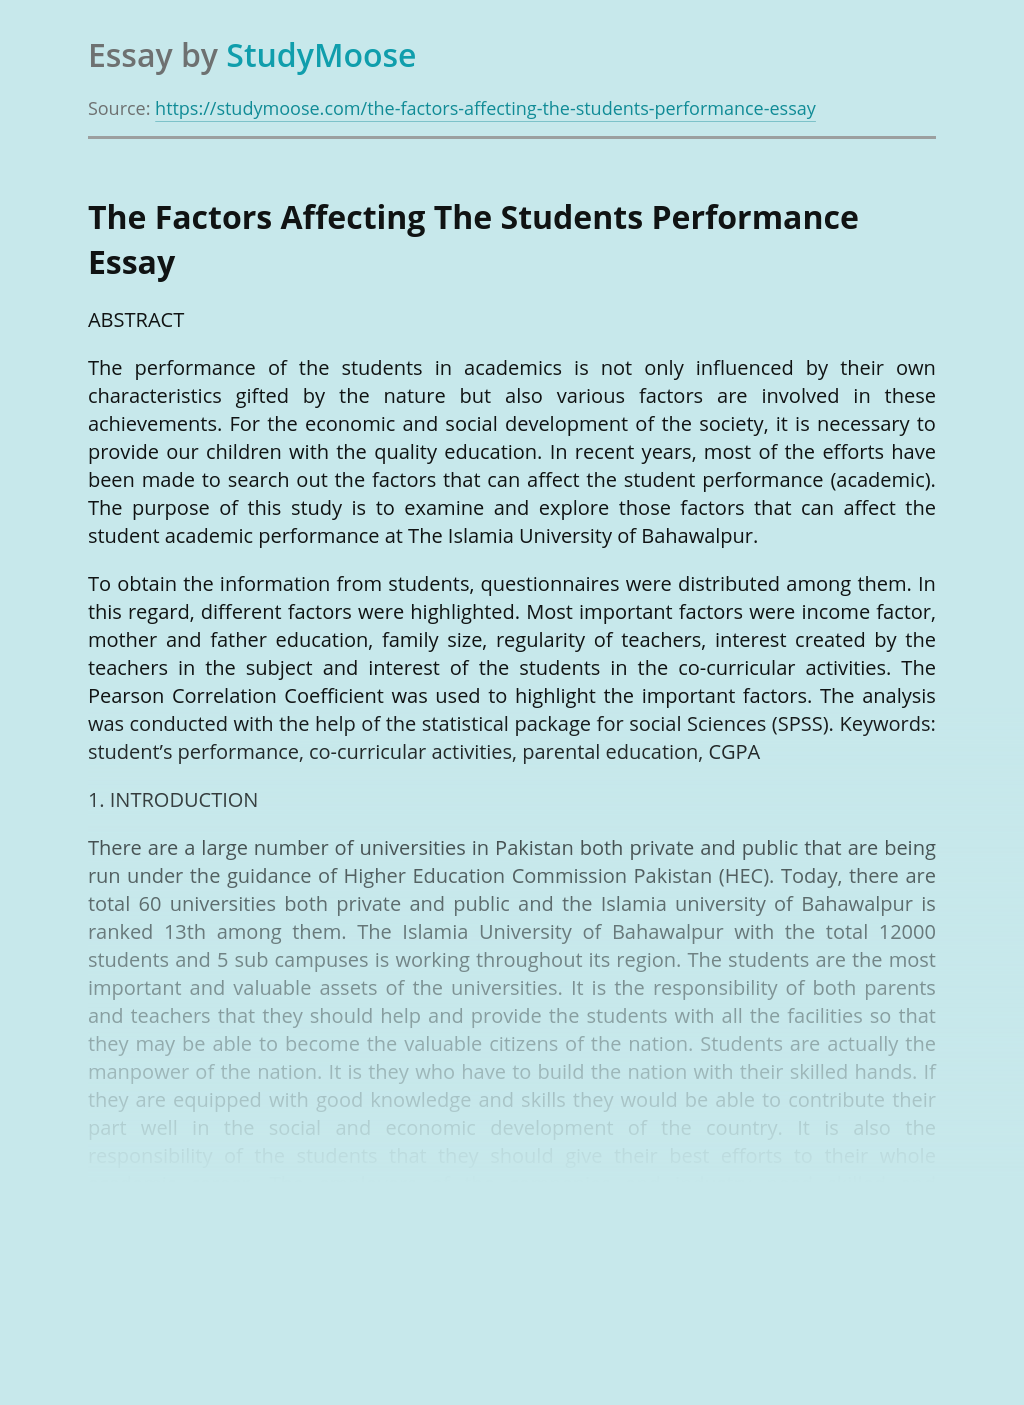 The Factors Affecting The Students Performance in Pakistan